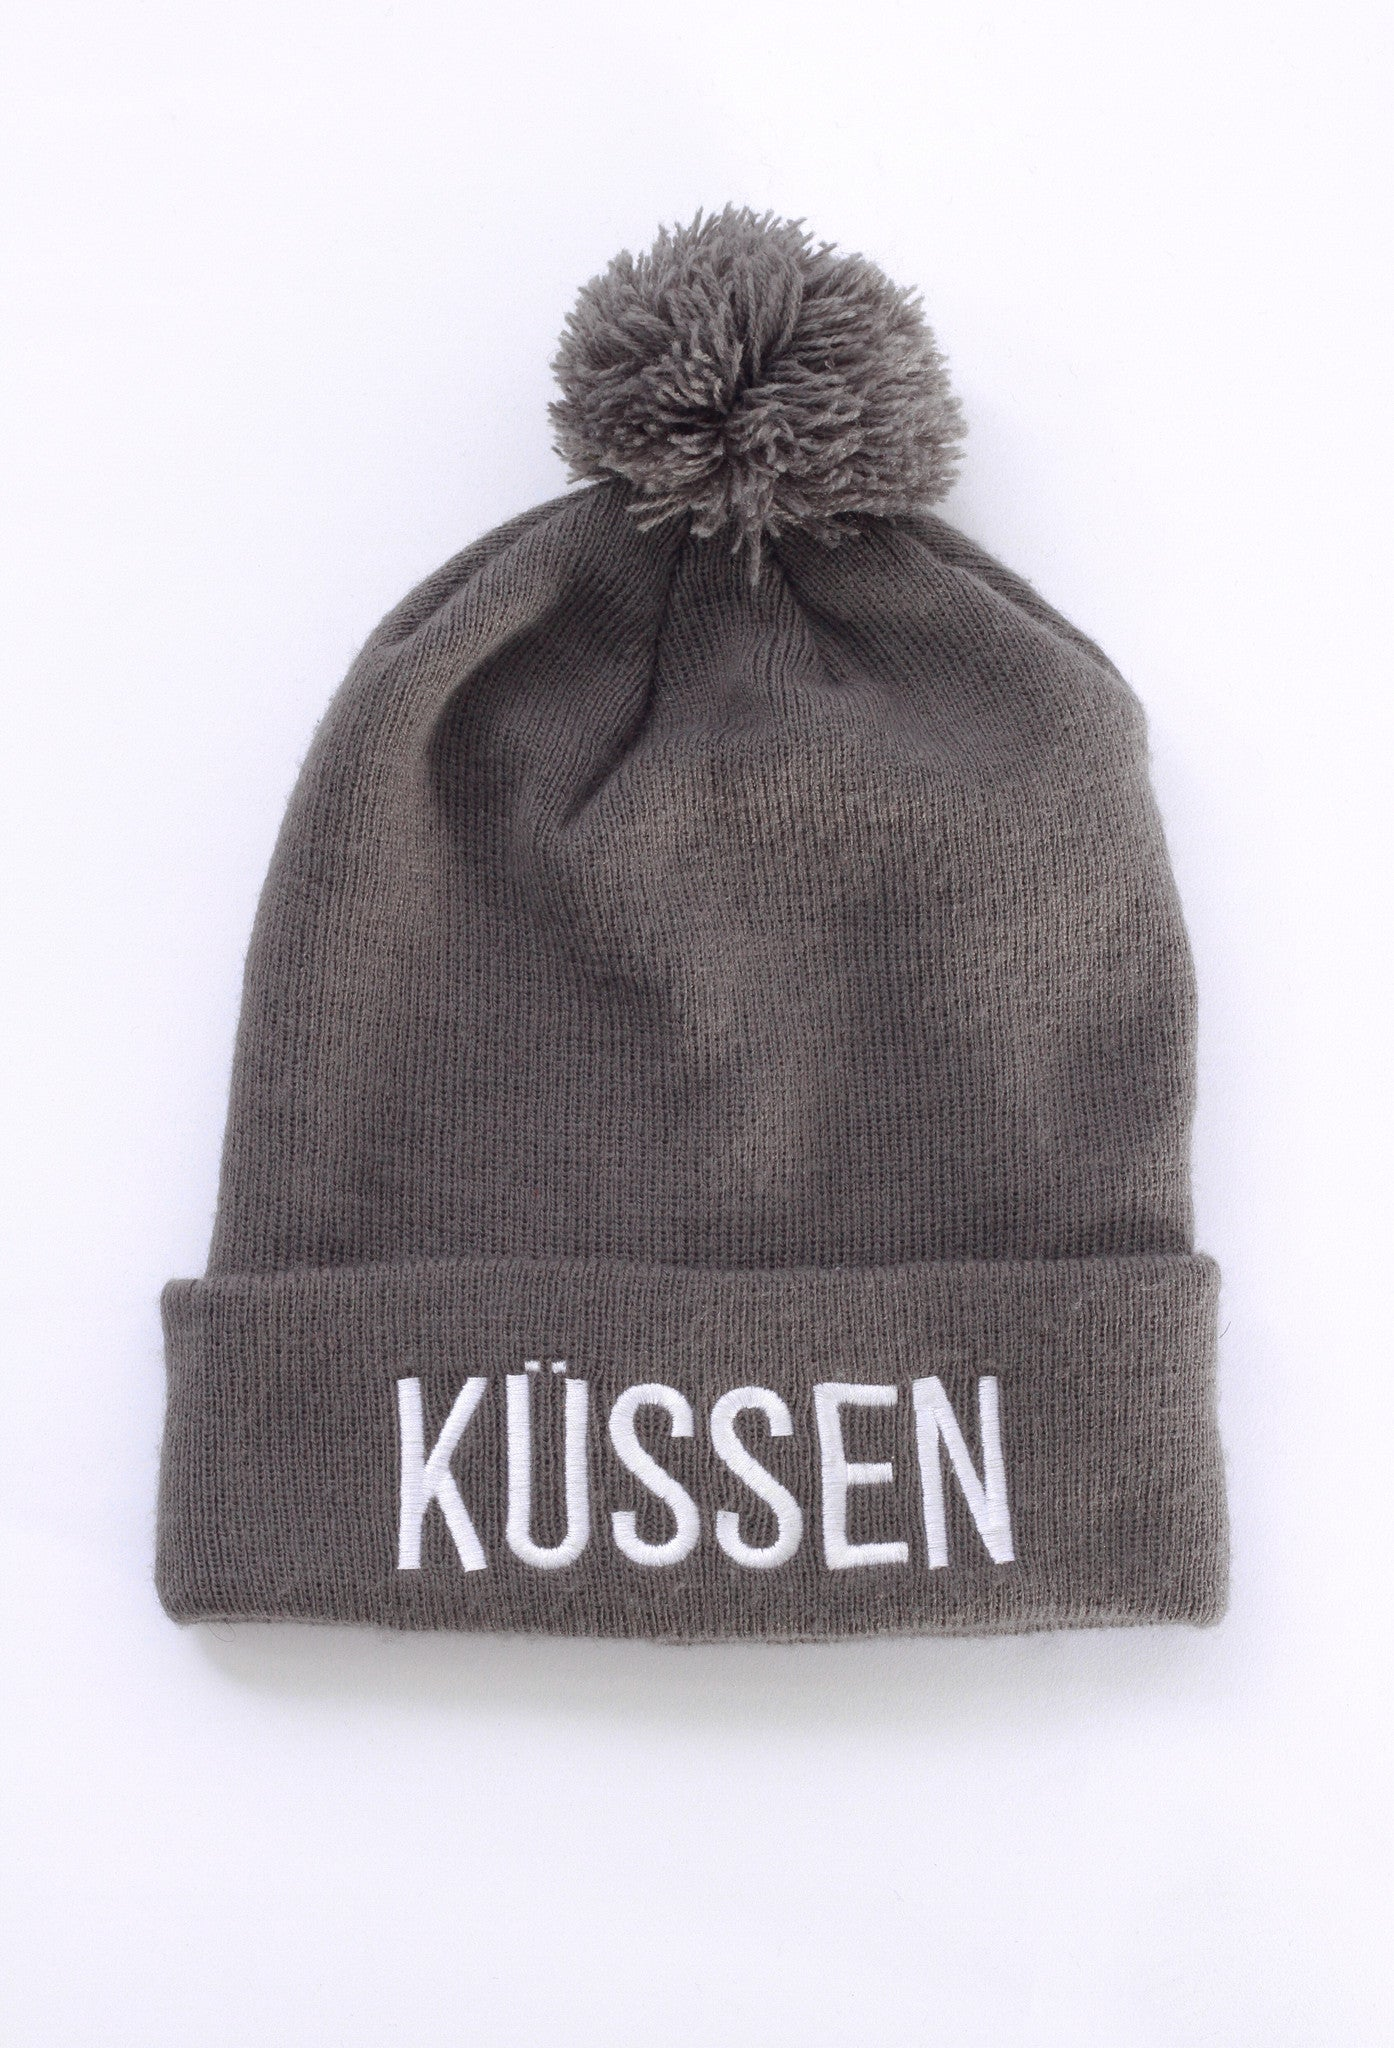 Kussen Grey Bobble Hat Beanie